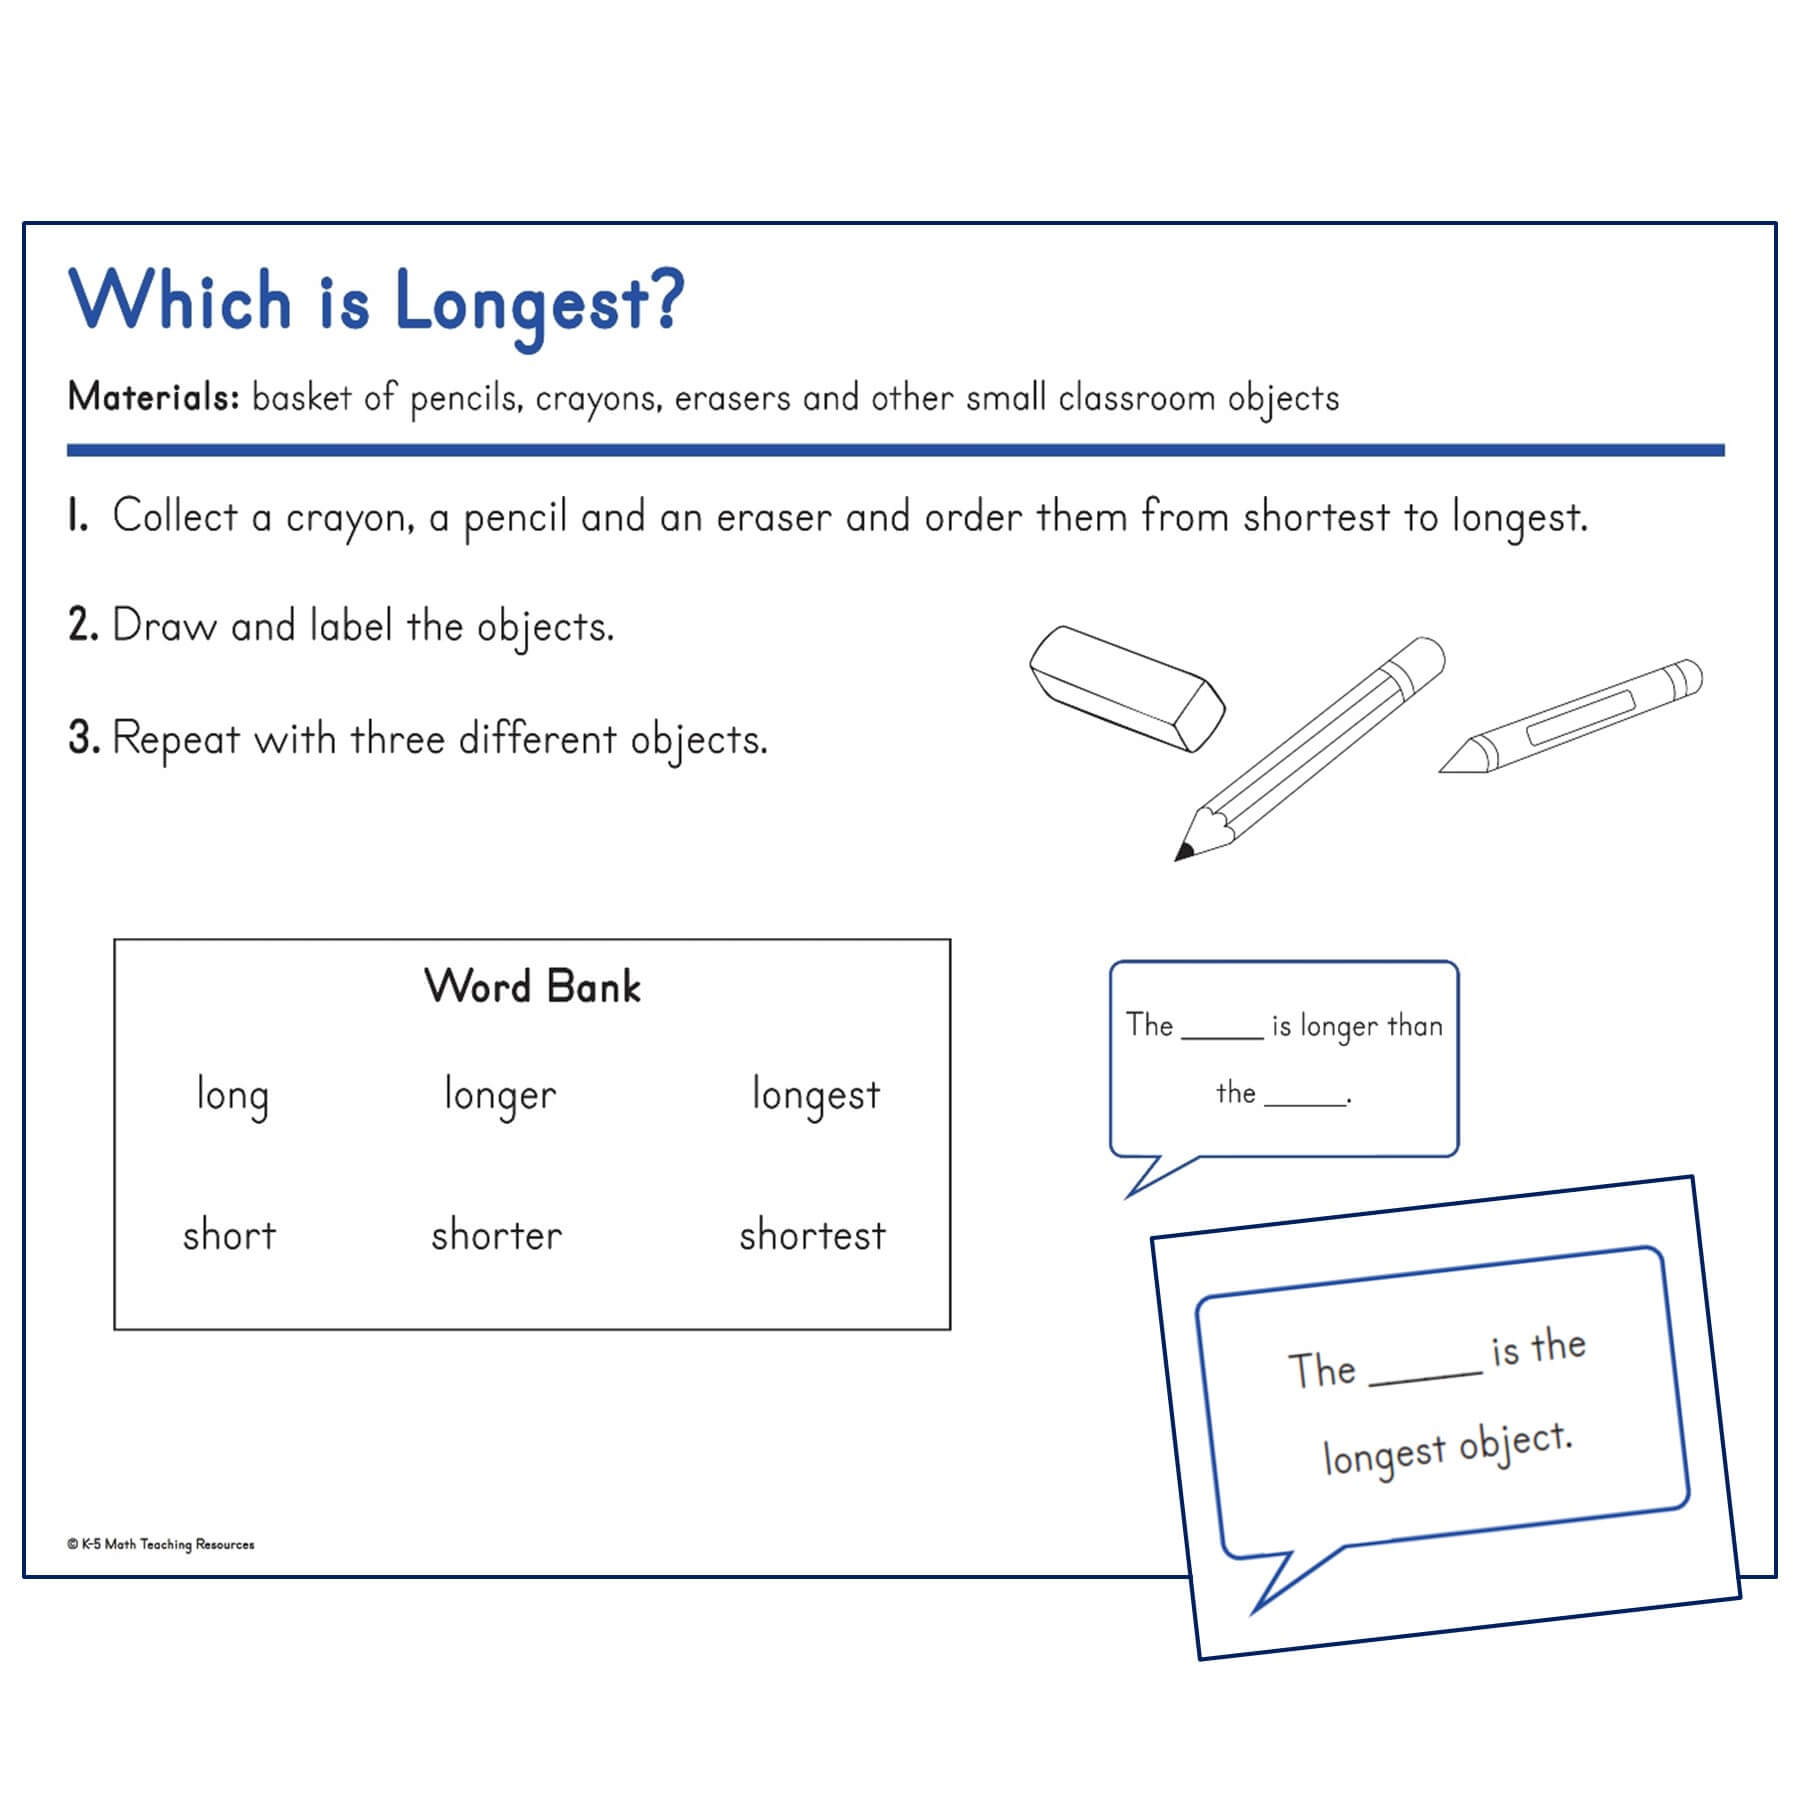 1.MD.A.1 Which is Longest?